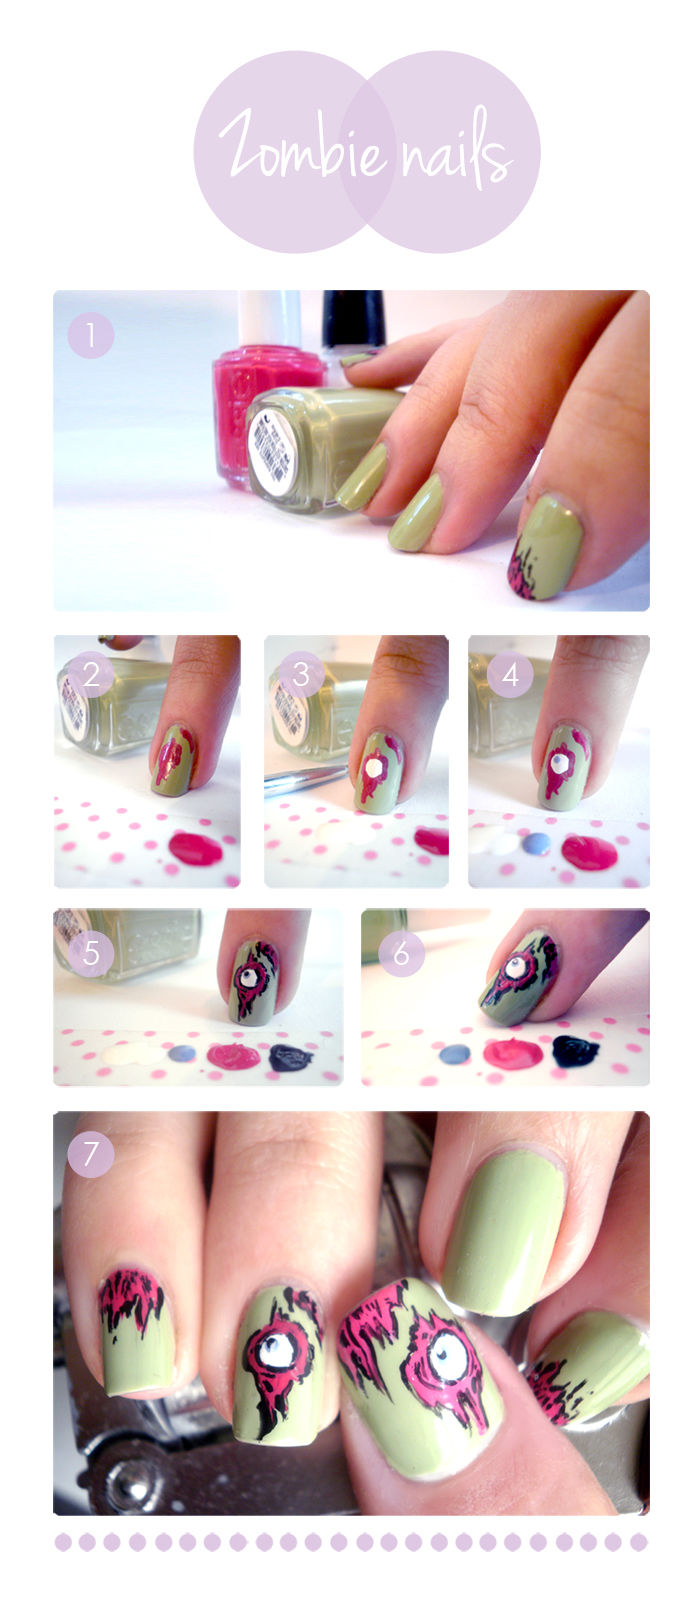 Nail art tutorial on pinterest – Great photo blog about ...